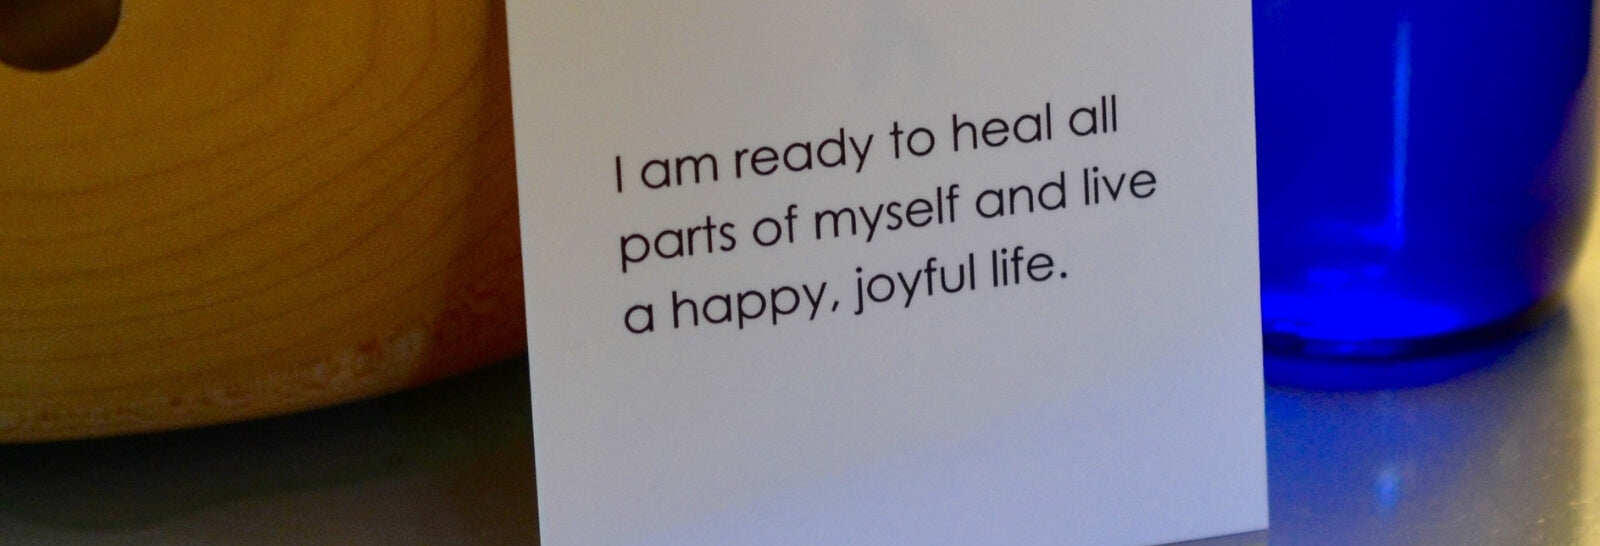 affirmation-card-for-healing